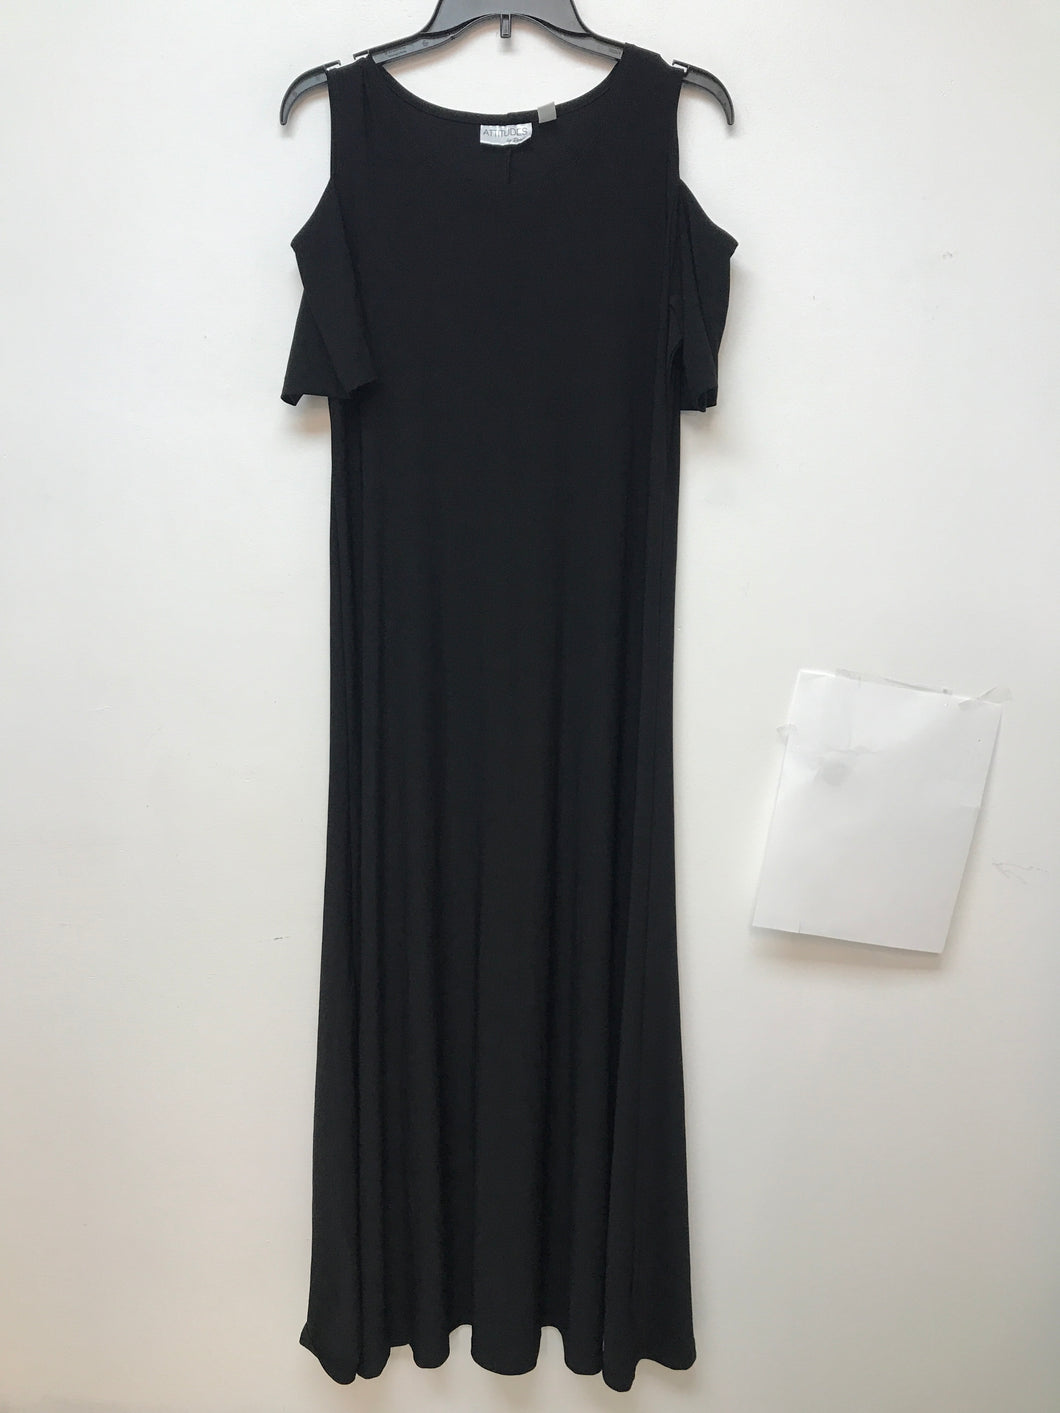 Women's Attitudes Black Dress